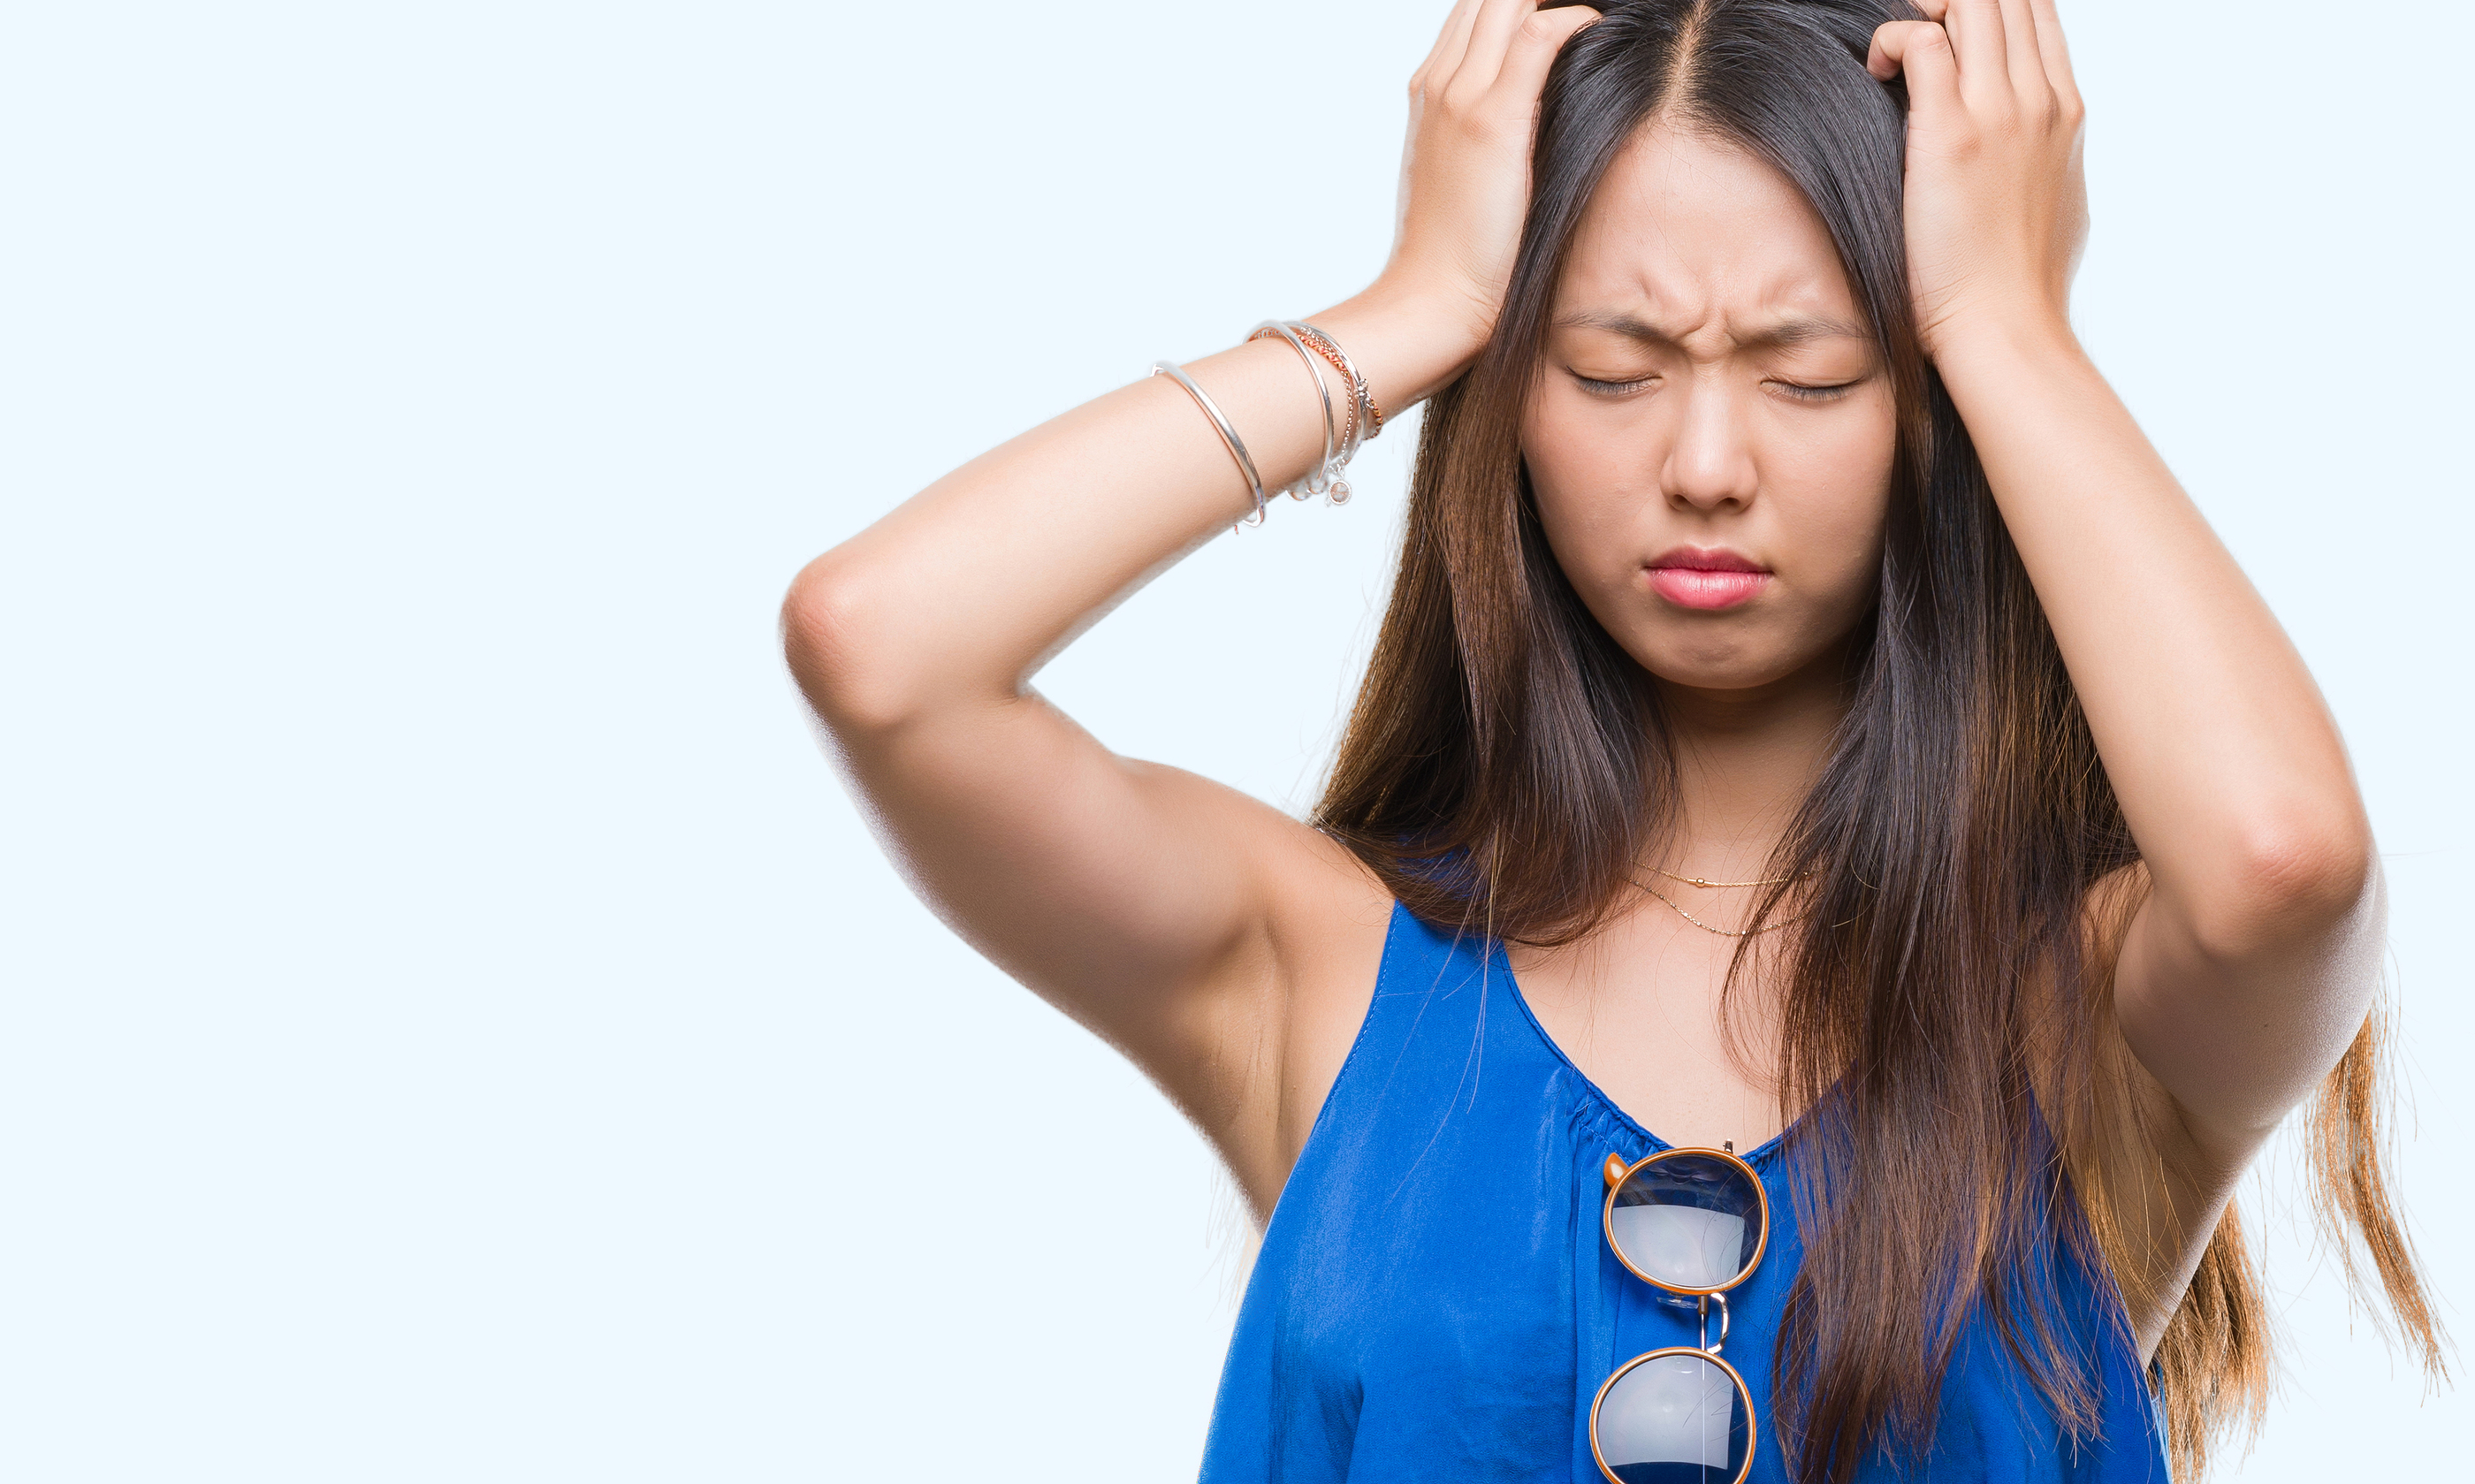 What does Botox have to do with it? Five things you probably didn't know about migraines